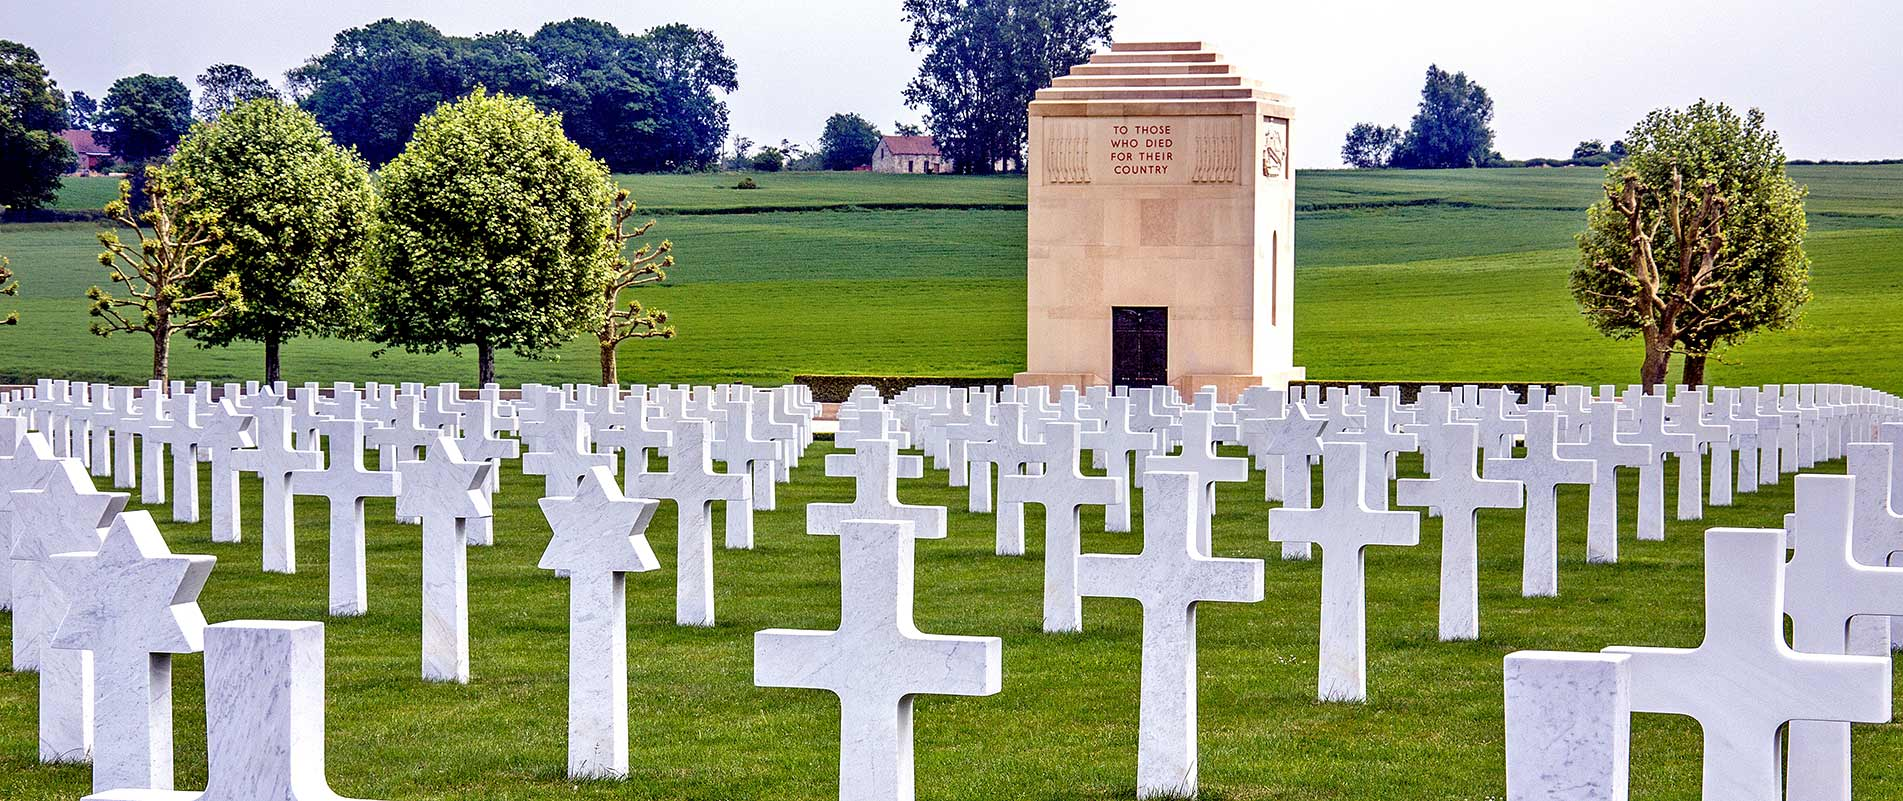 Tombstones in a cemetery for American WWI soldiers in died on the Somme Battlefields in France.